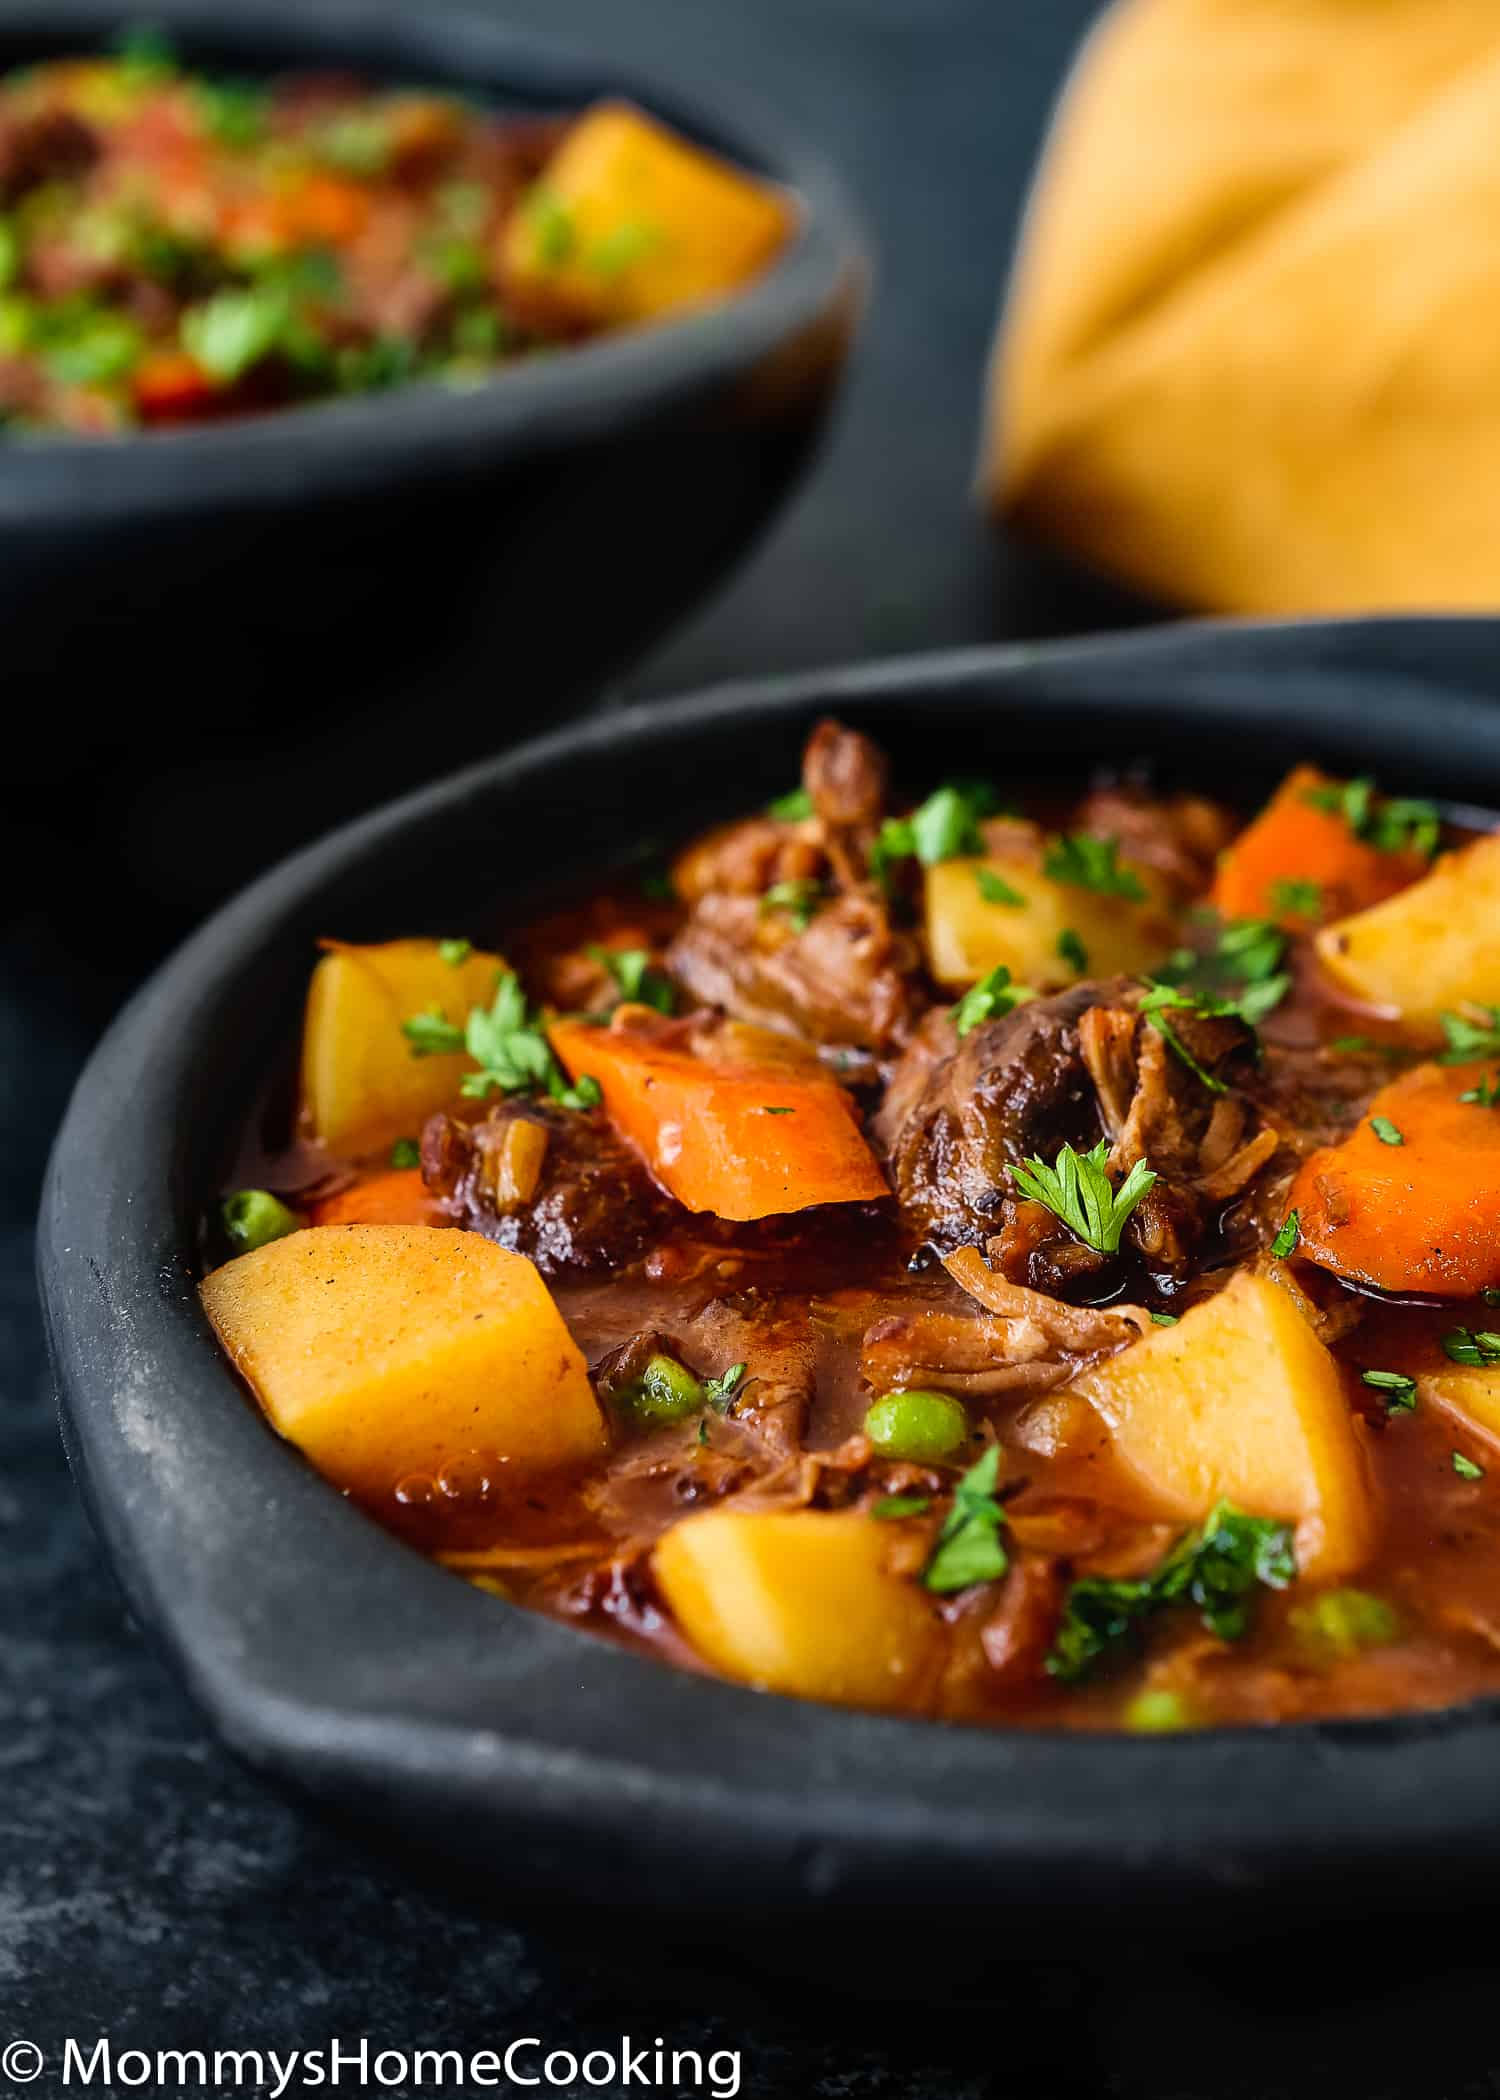 This Slow Cooker Oxtail Stew is hearty, mouthwatering and incredibly tender! Yes, Oxtail!! Are you intrigued? Keep reading to see how you can turn this underrated cut of meat in the most delicious beef stew ever. Melt-in-your-mouth beef loaded with potatoes, carrots, and peas, all smothered in an incredibly tasty stew broth, this Slow Cooker Oxtail Stew is a comforting, delicious meal any day of the week. https://mommyshomecooking.com